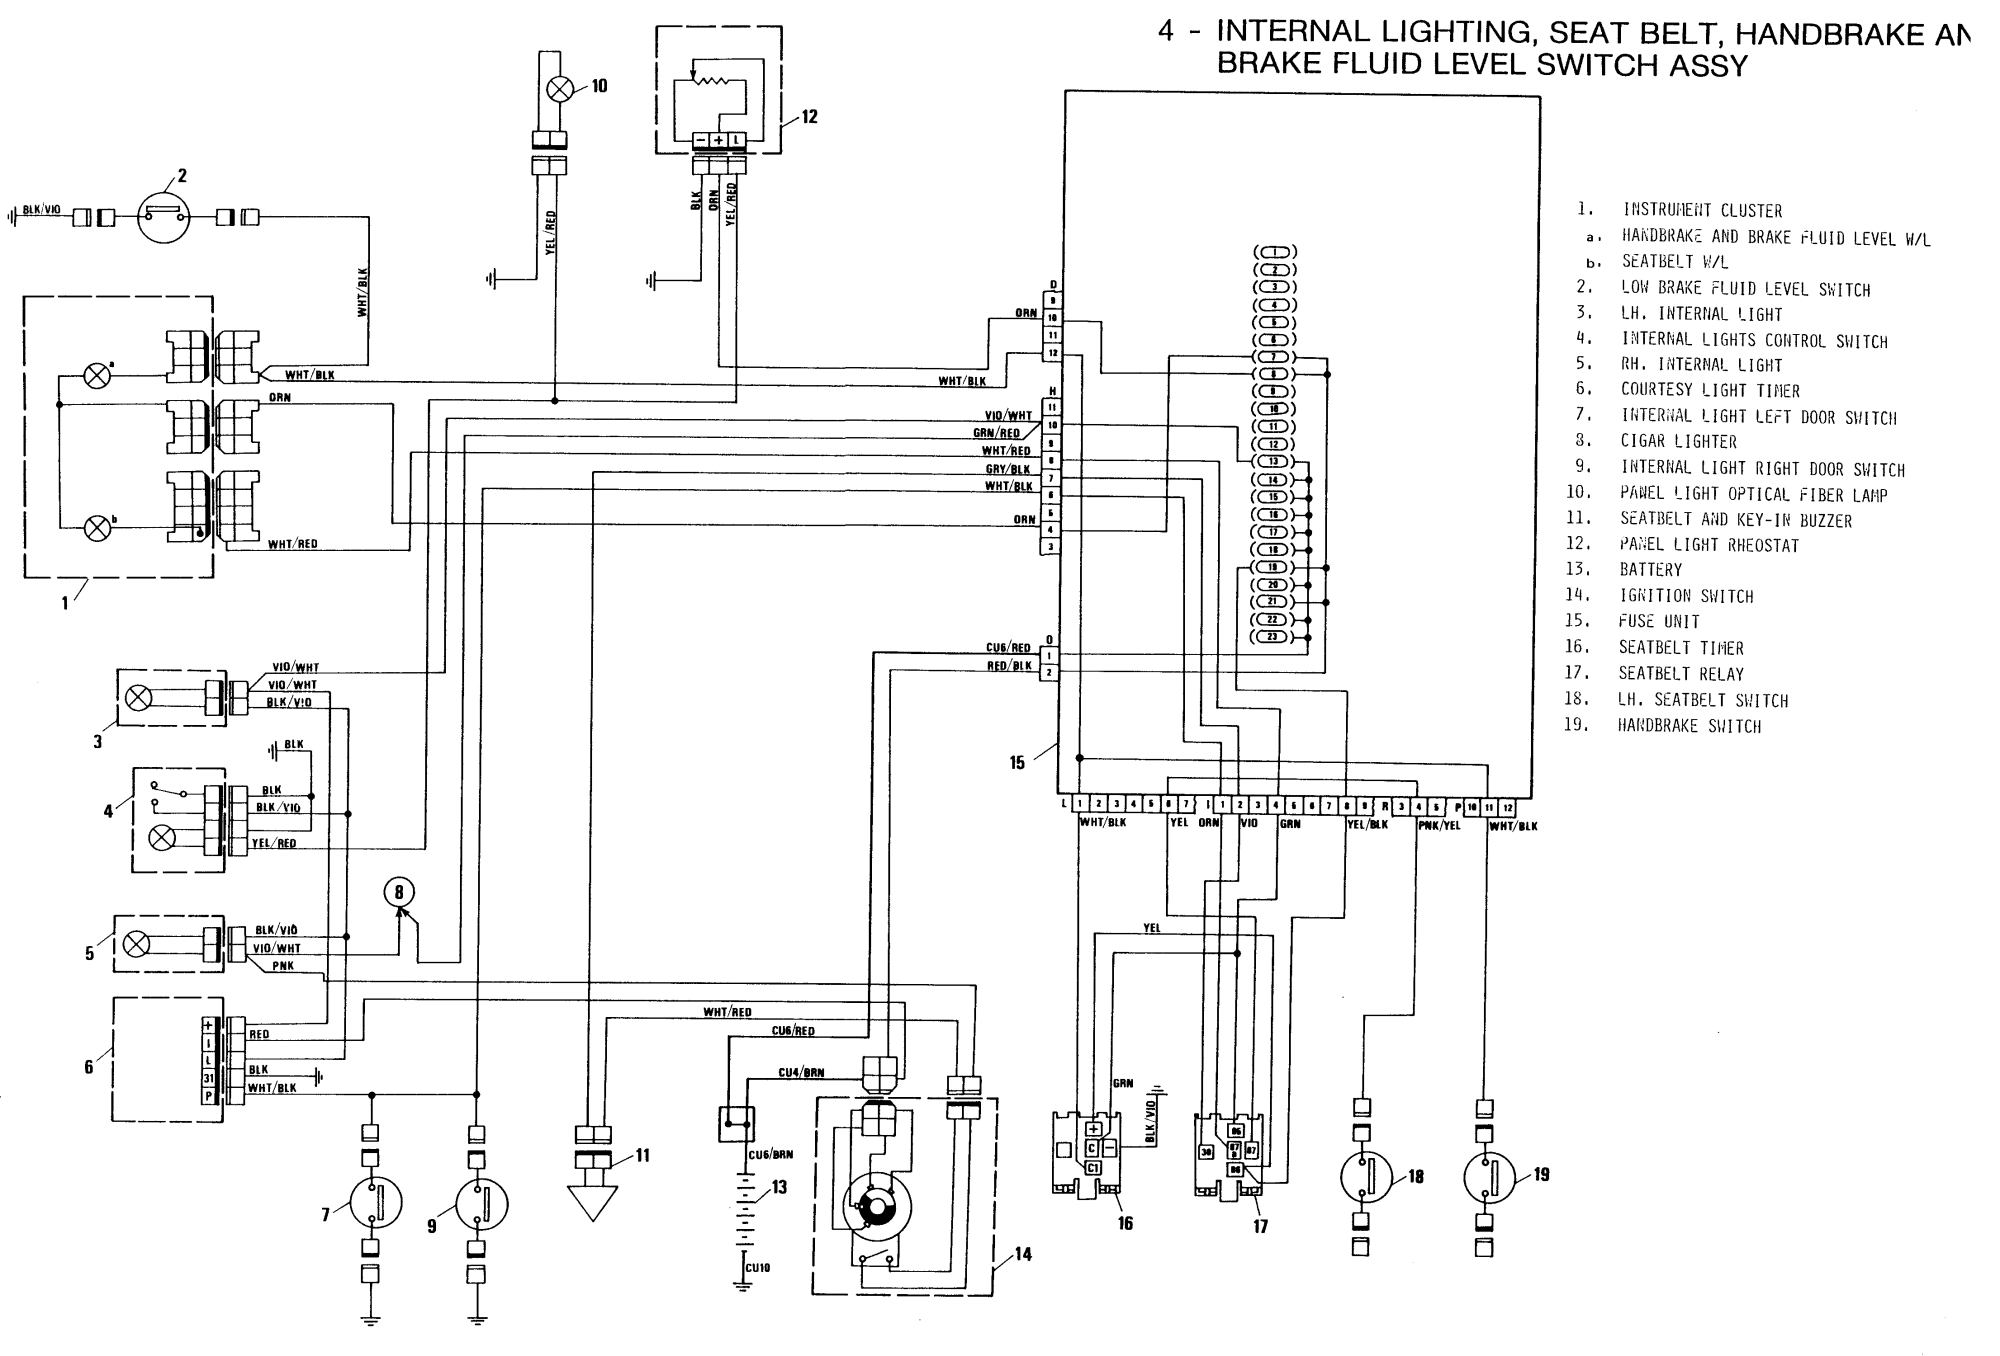 hight resolution of x1 wiring diagram electrical wiring diagrams xfinity x1 wiring diagram x1 wiring diagram